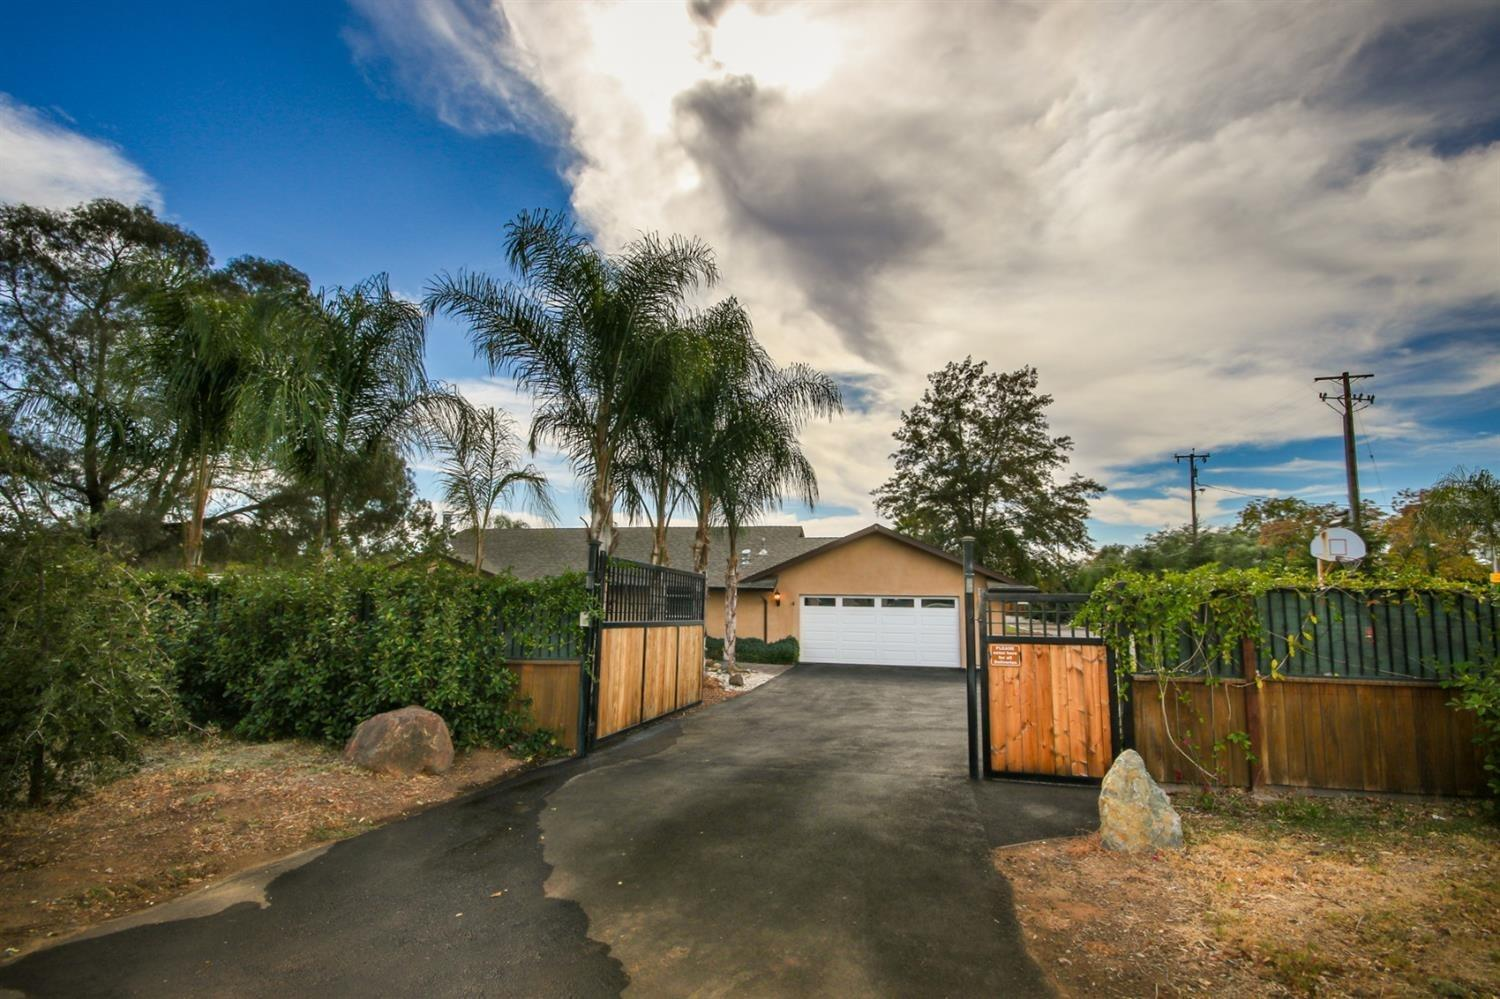 RARE OPPORTUNITY - 2 HOMES plus a Casita on 1 ACRE LOT (.96 ac) with POOL! **MAIN HOUSE is updated 2162 sqft, 3 bed/2 bath PLUS 380 sqft 1 bed/1 bath CASITA. *GUEST HOUSE is 1296 sqft 2 bed/1 bath with full Kitchen, indoor laundry, large covered front patio & private fully gated backyard next to Large 17' x 26' WORKSHOP. Privacy fencing around property with remote gate entry for each house. Property features a Large custom 26,000 gal PebbleTec Salt Water POOL, private 8 person free standing SPA, extensive stamped concrete, multiple covered patios with electrical & ceiling fans, small ORCHARD with 23 different types of fruits, KOI Pond, 2 separate RV hookups, plenty of parking w/ AMAZING landscaping. Ultimate rural seclusion yet close to award winning Schools and all the restaurants, shopping, recreation and amenities West Roseville has to offer. Only 25 min to SMF Airport and Midtown Sacramento. Too many details to list!